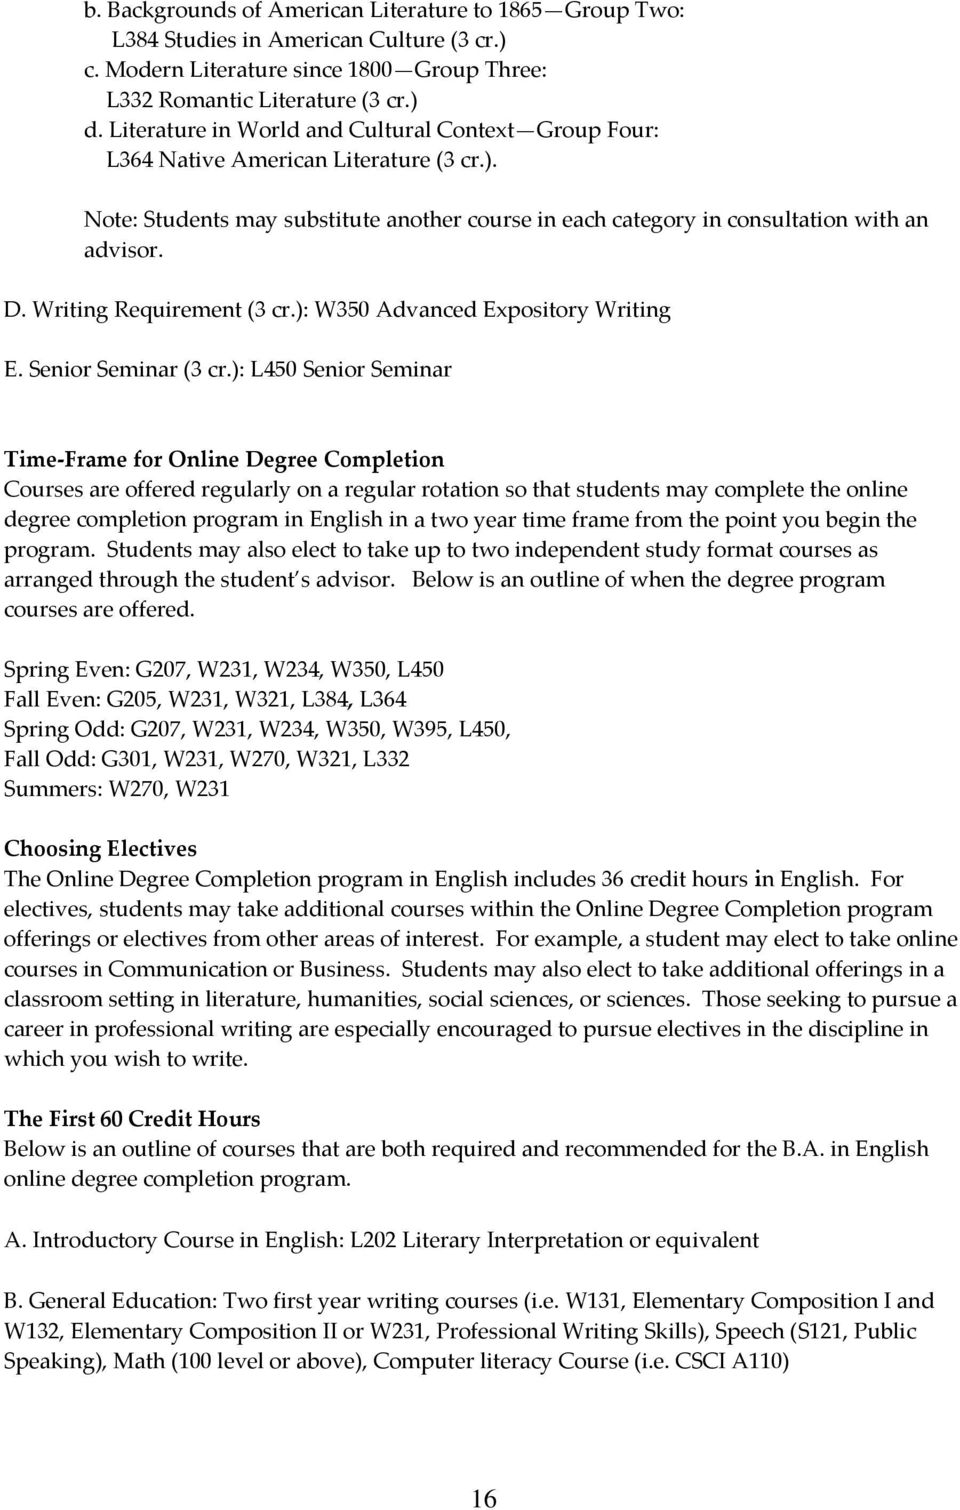 Writing Requirement (3 cr.): W350 Advanced Expository Writing E. Senior Seminar (3 cr.